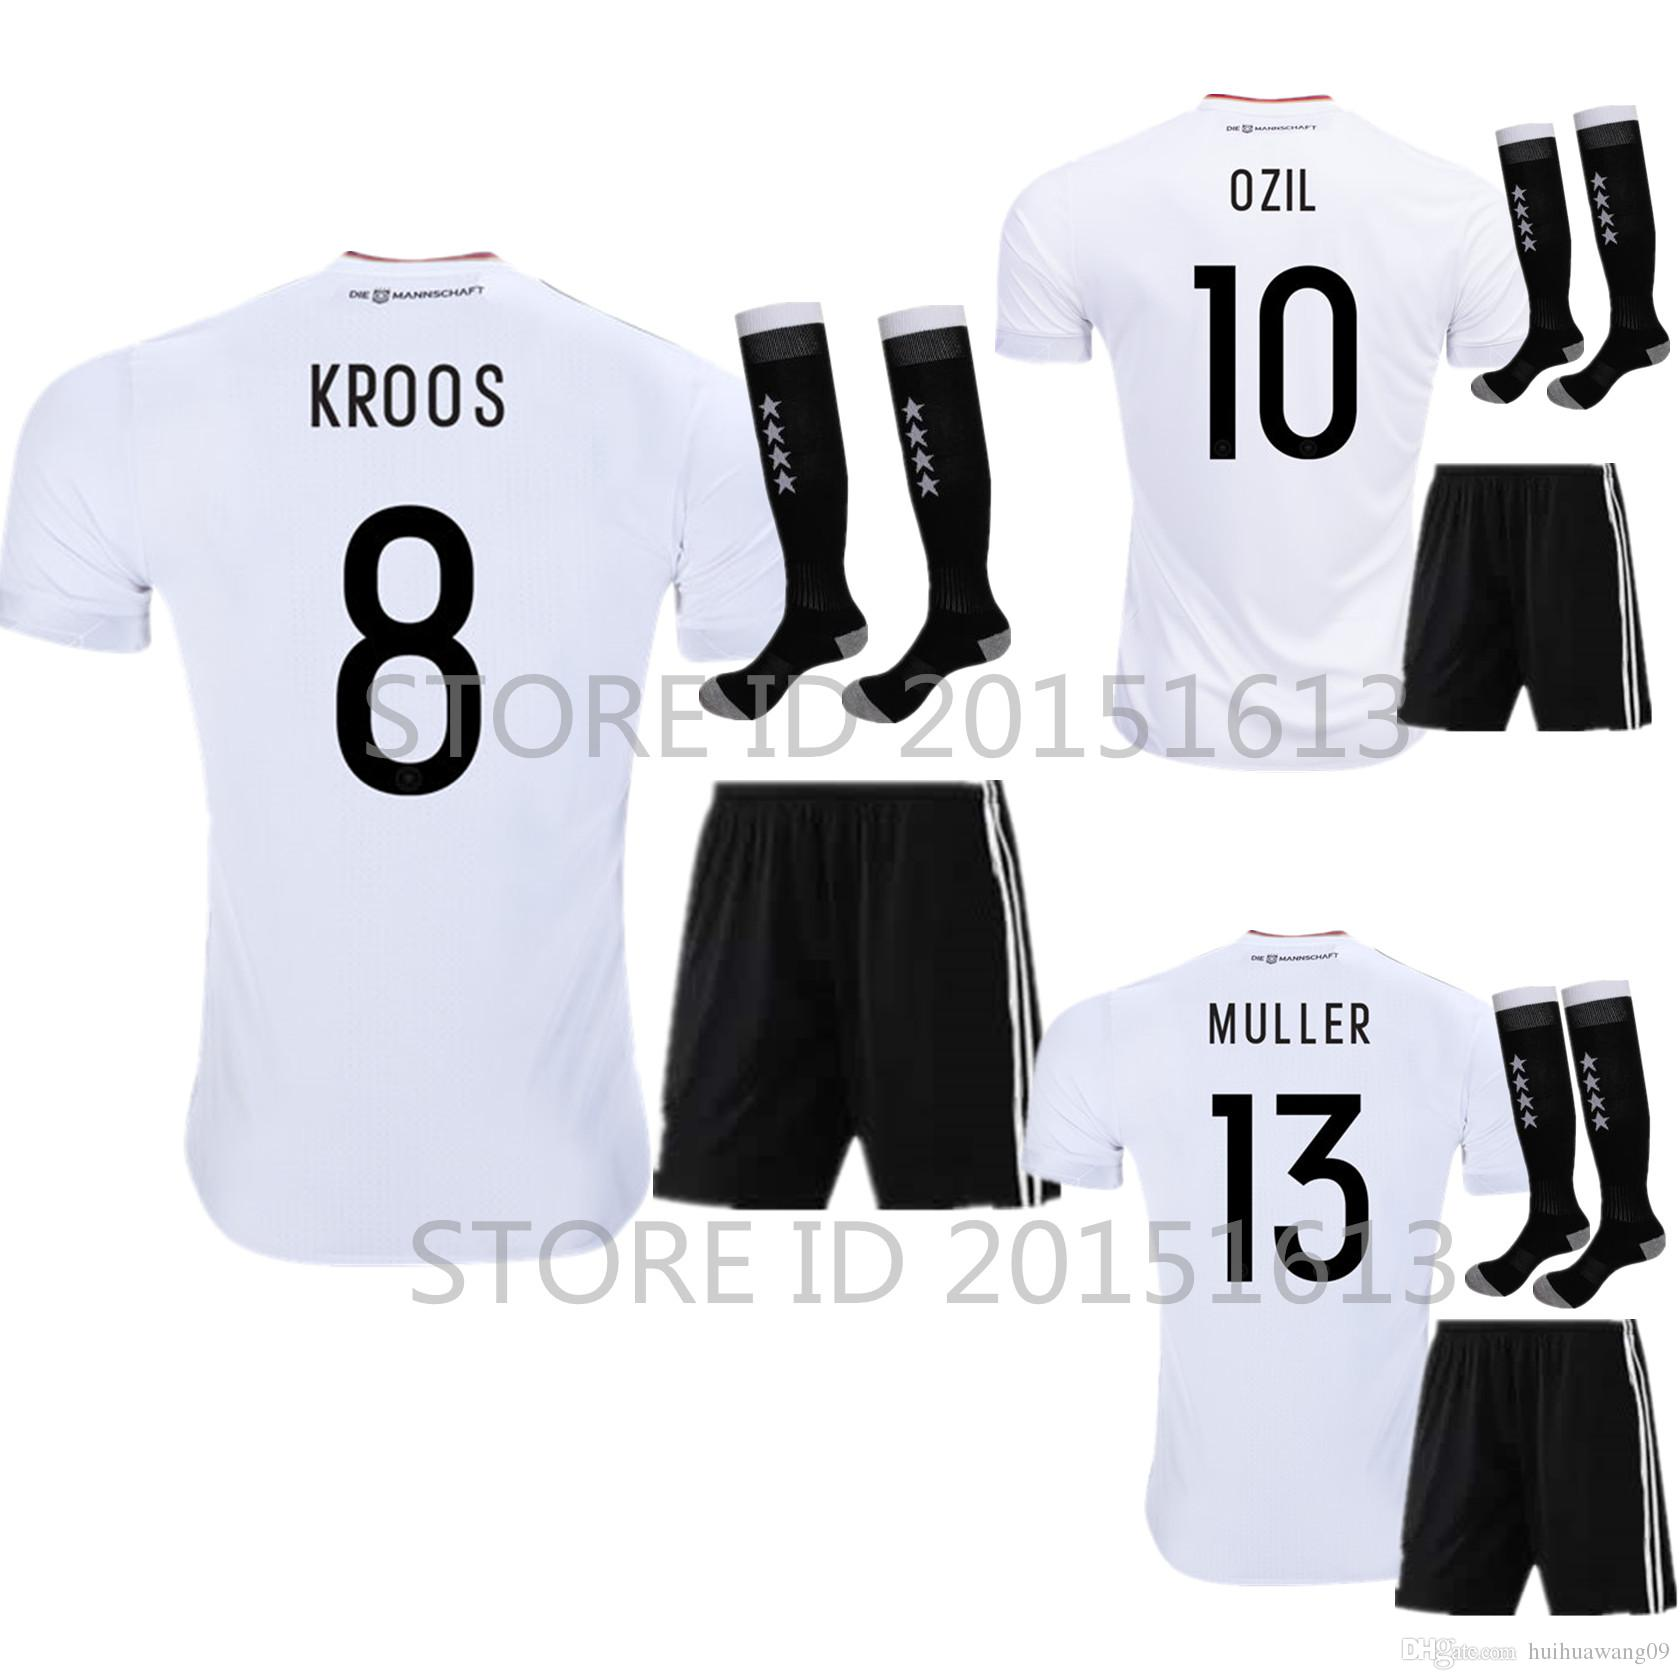 2015 2016 germany soccer jersey uniform short sleeves home for Germany mercedes benz soccer jersey